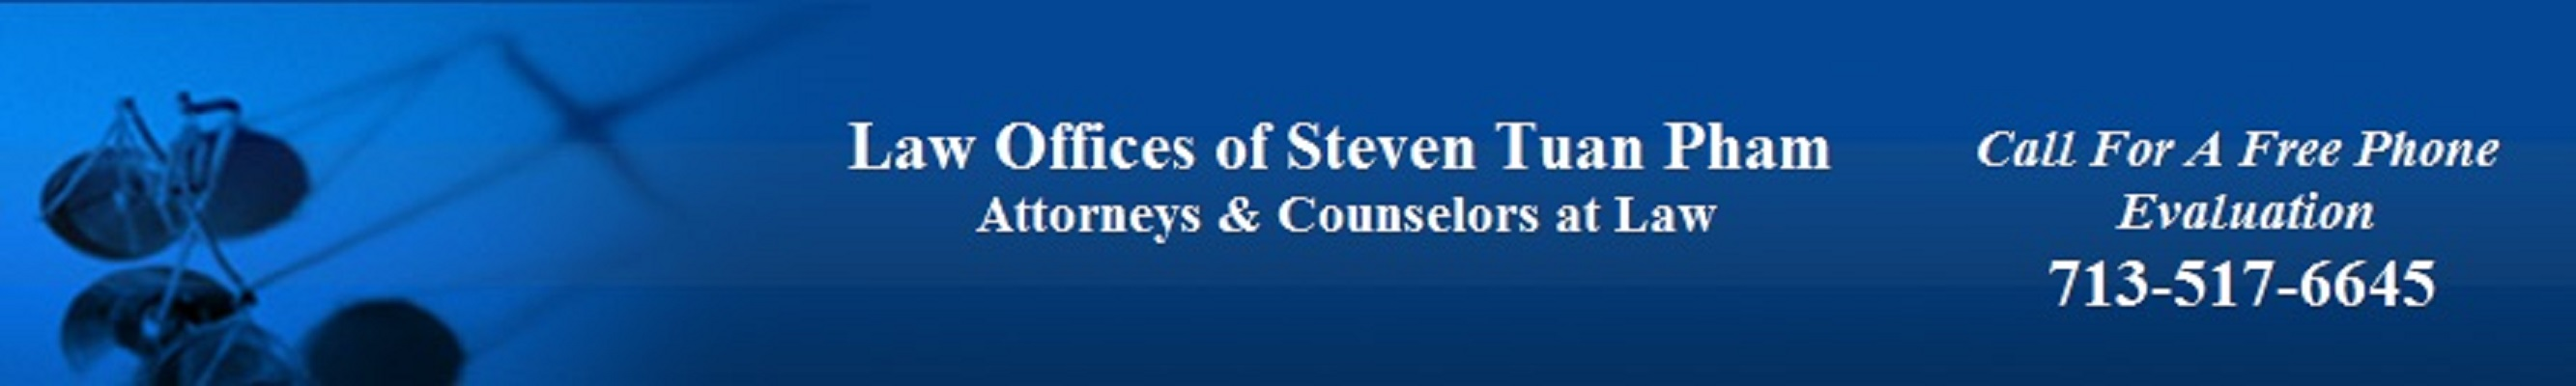 LAW OFFICES OF STEVEN TUAN PHAM.